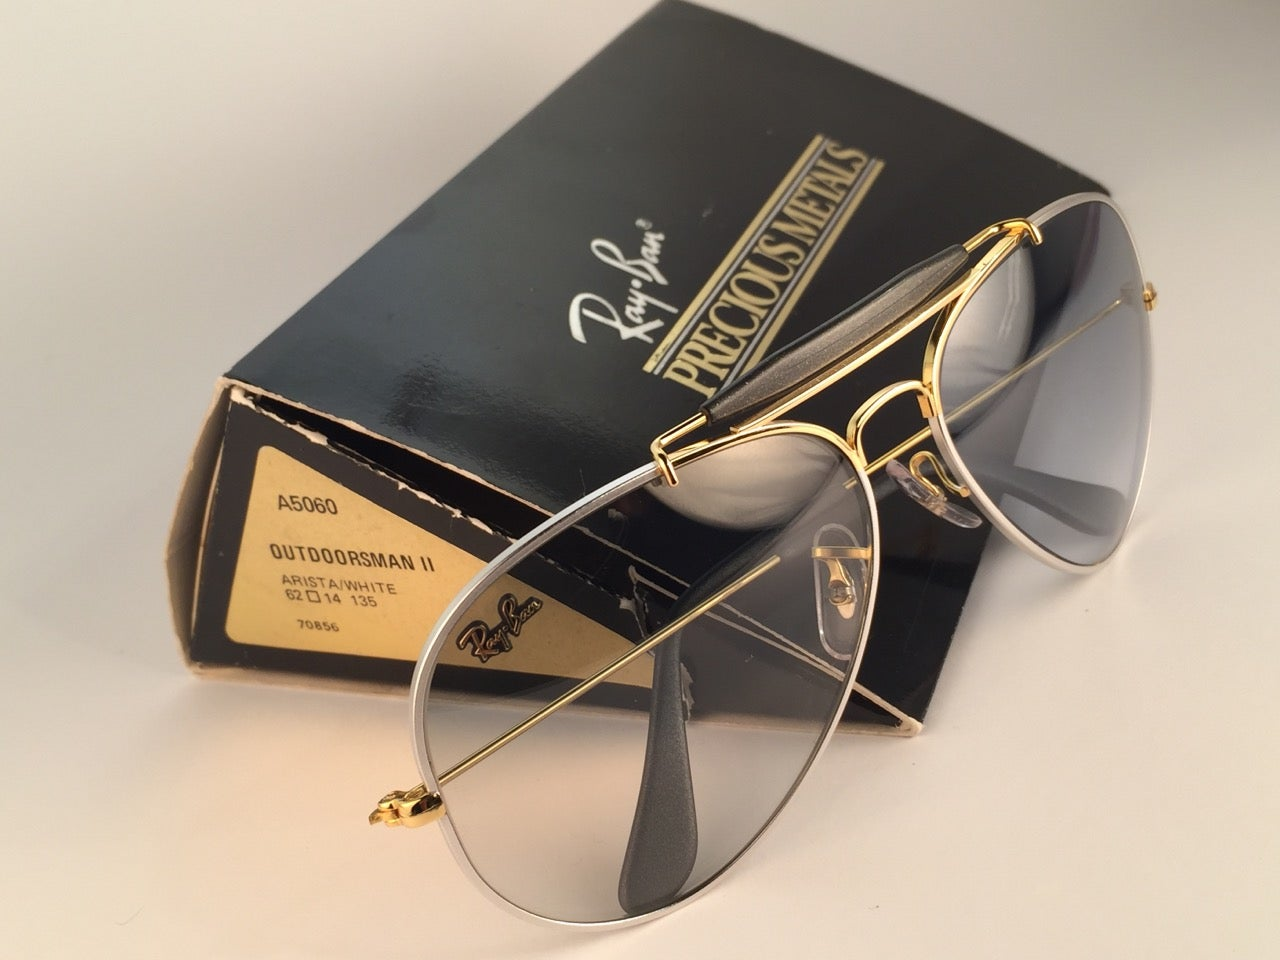 c2d0870ff39 New Ray Ban Precious Metals 24k Gold Platinum B L Outdoorsman 62  USA  Sunglasses For Sale at 1stdibs